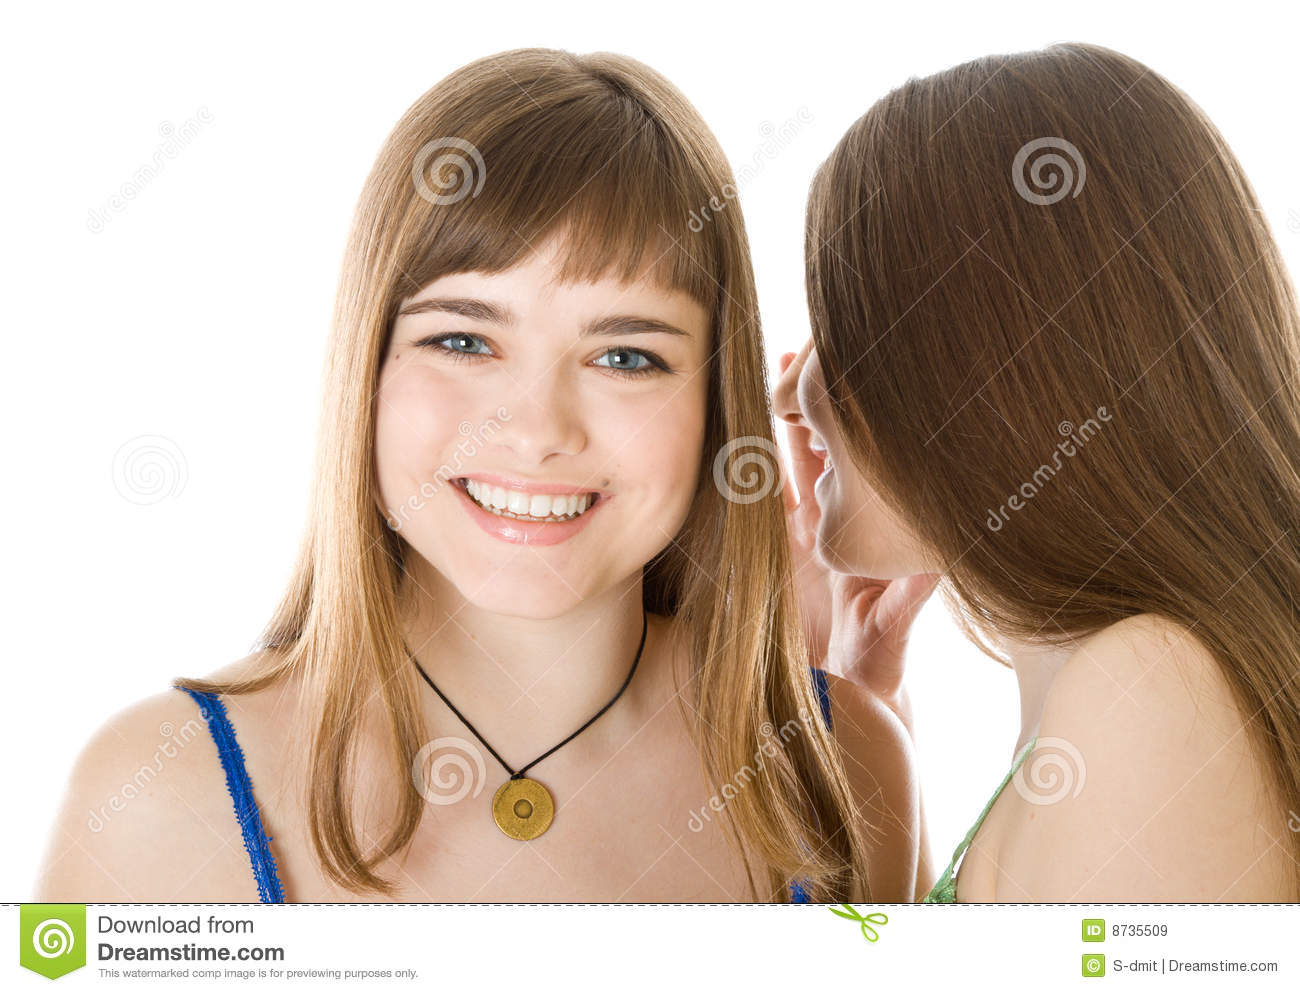 the secret to dating multiple girlfriends Dating and relationships how does it feel like to have multiple girlfriends update cancel answer wiki 1 answer franklin veaux, co-author of more than two: .